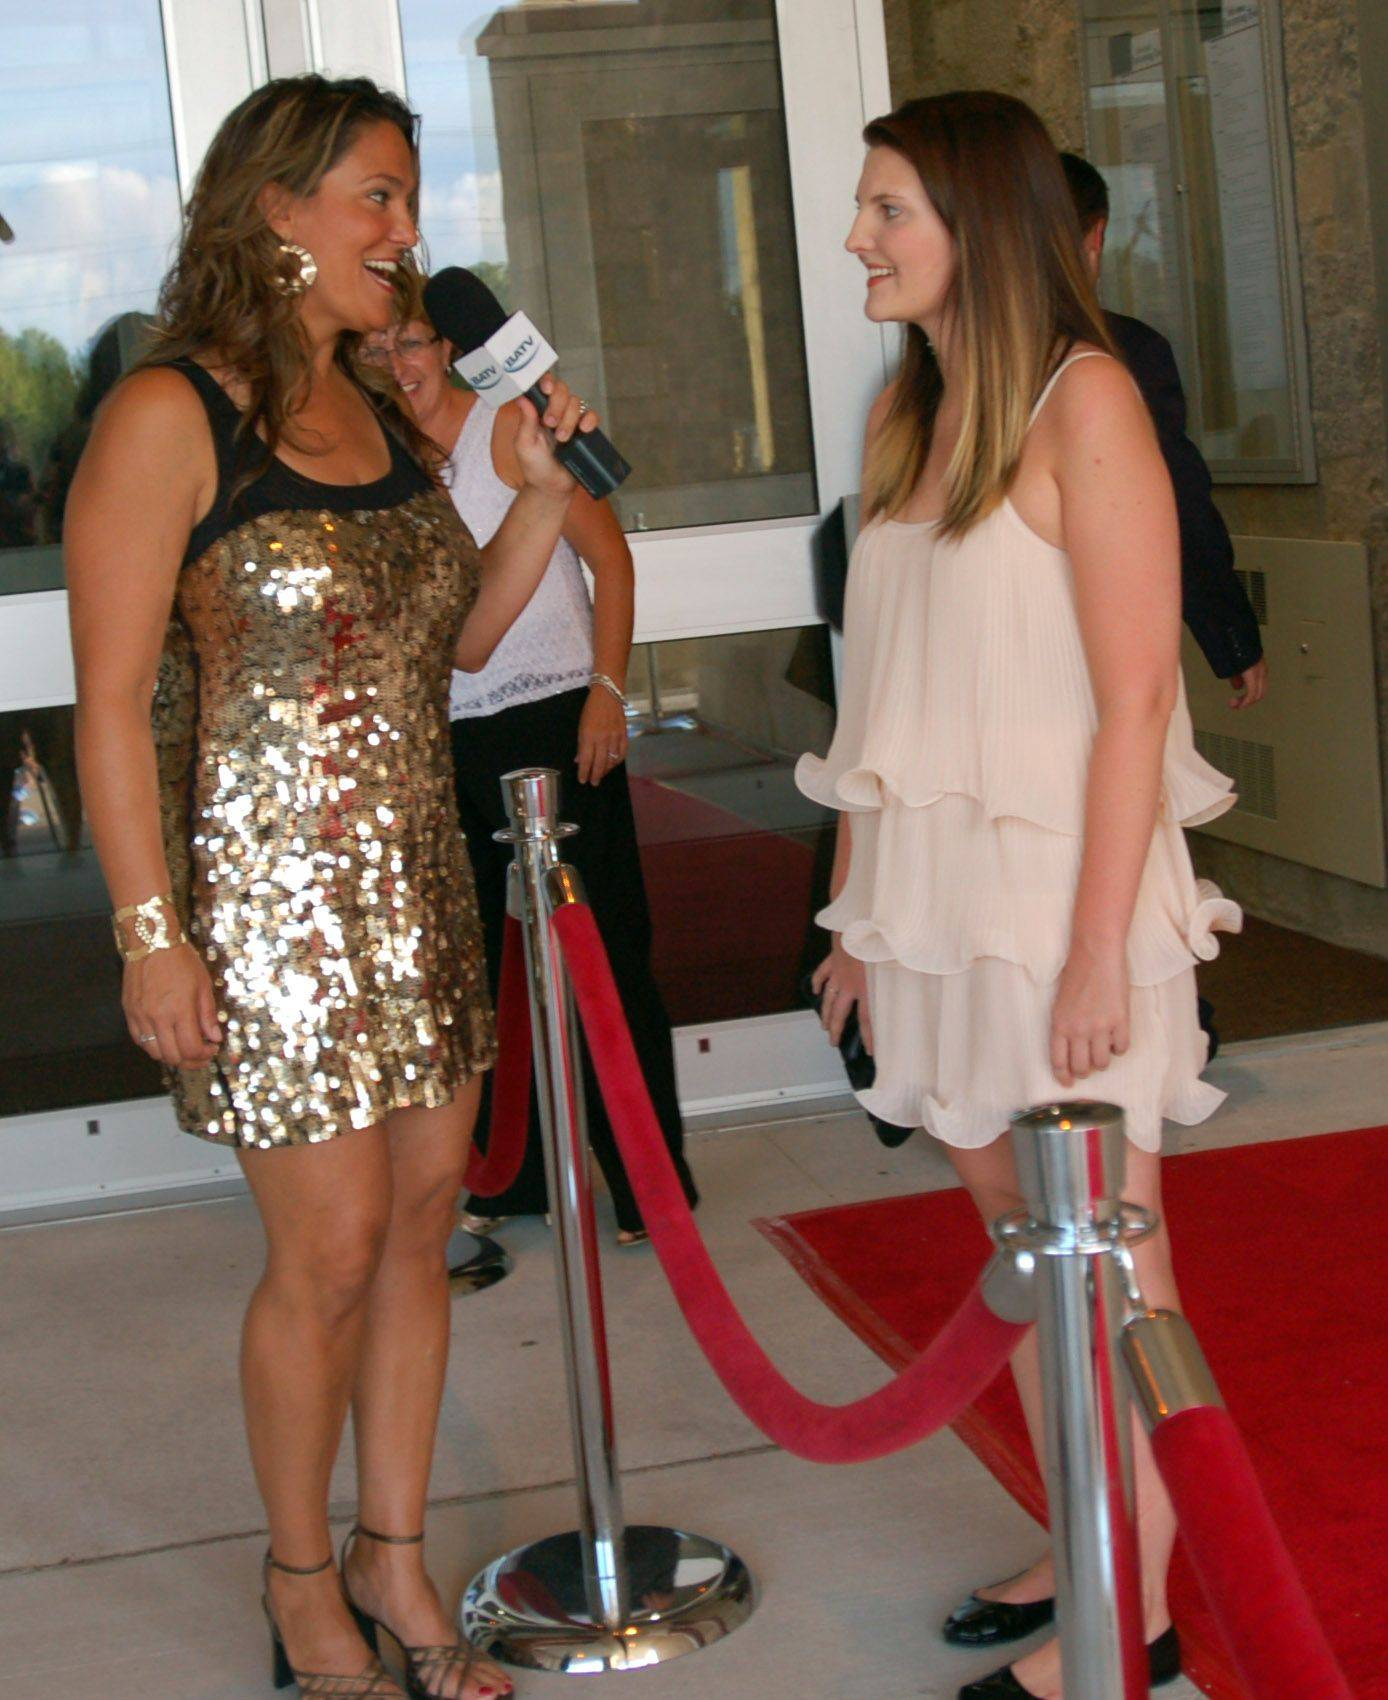 Allison Niemela of St. Charles, interviewed Maggie McHenry of Batavia, for Batavia Access Television during the Batavia Fine Arts Centre's Red Carpet Gala opening on Saturday. The arts center is the school's first real auditorium, and will also serve as a community center for the city of Batavia.